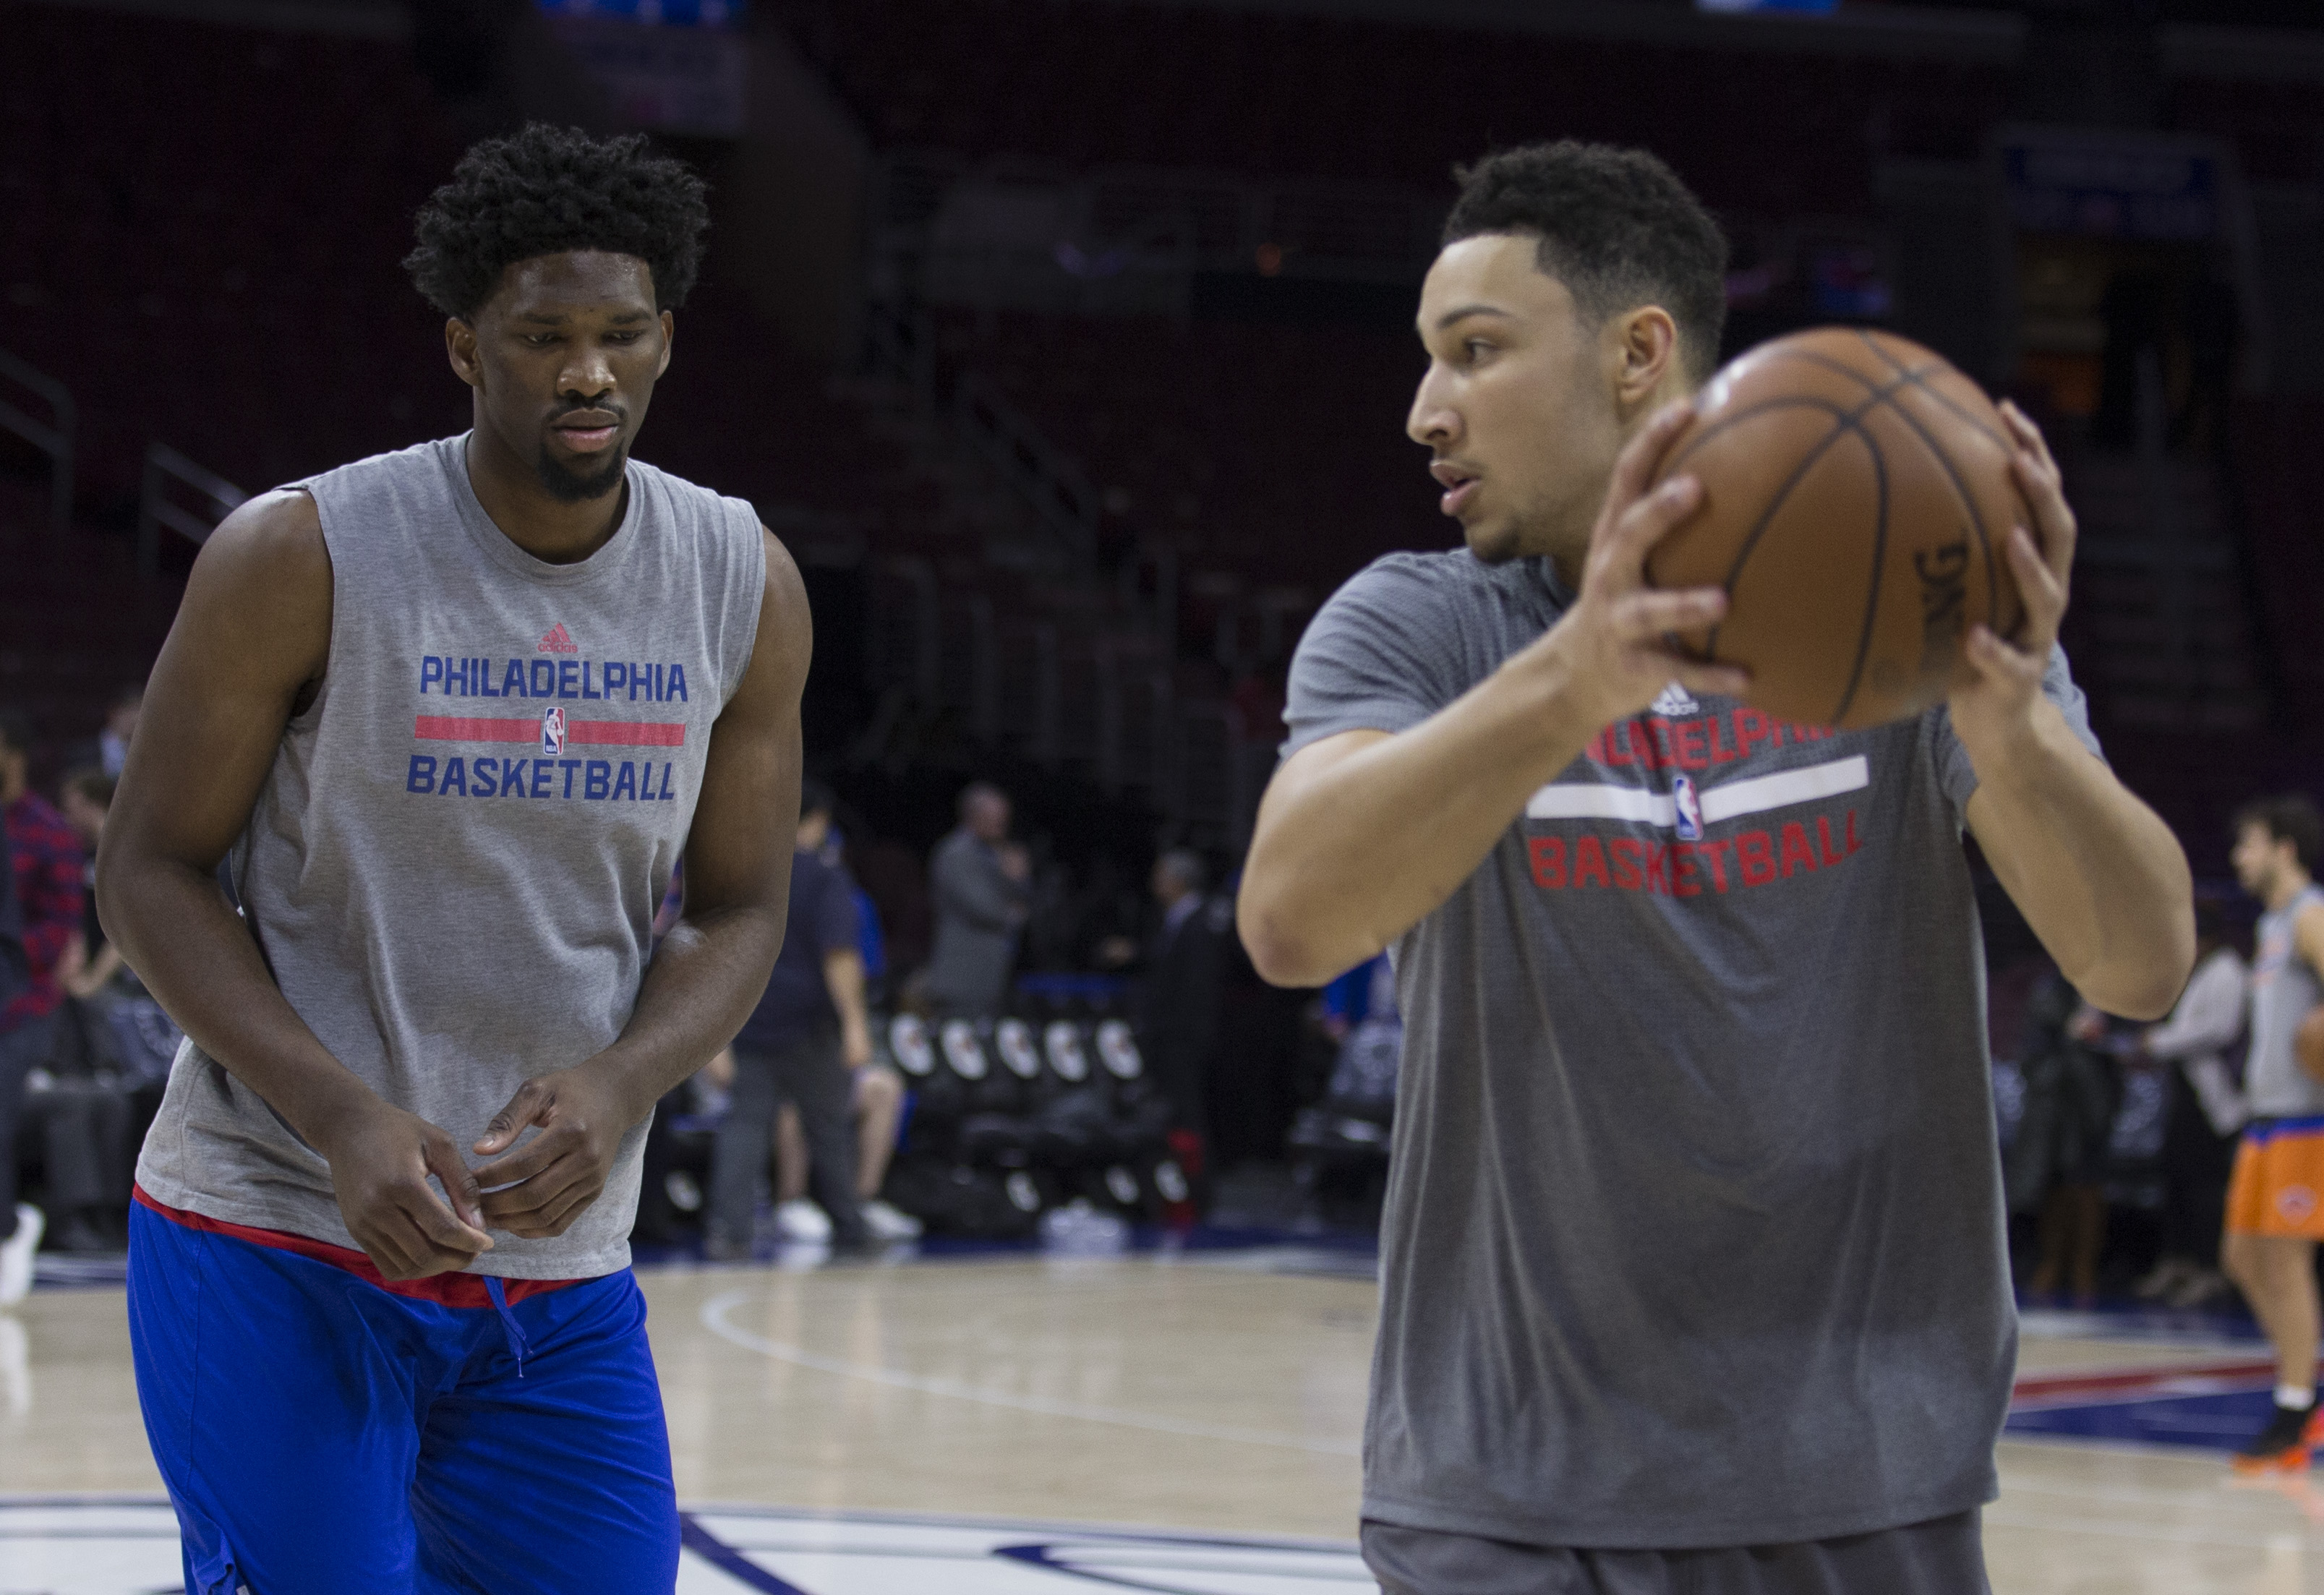 76ers center Joel Embiid expects to be ready for training camp